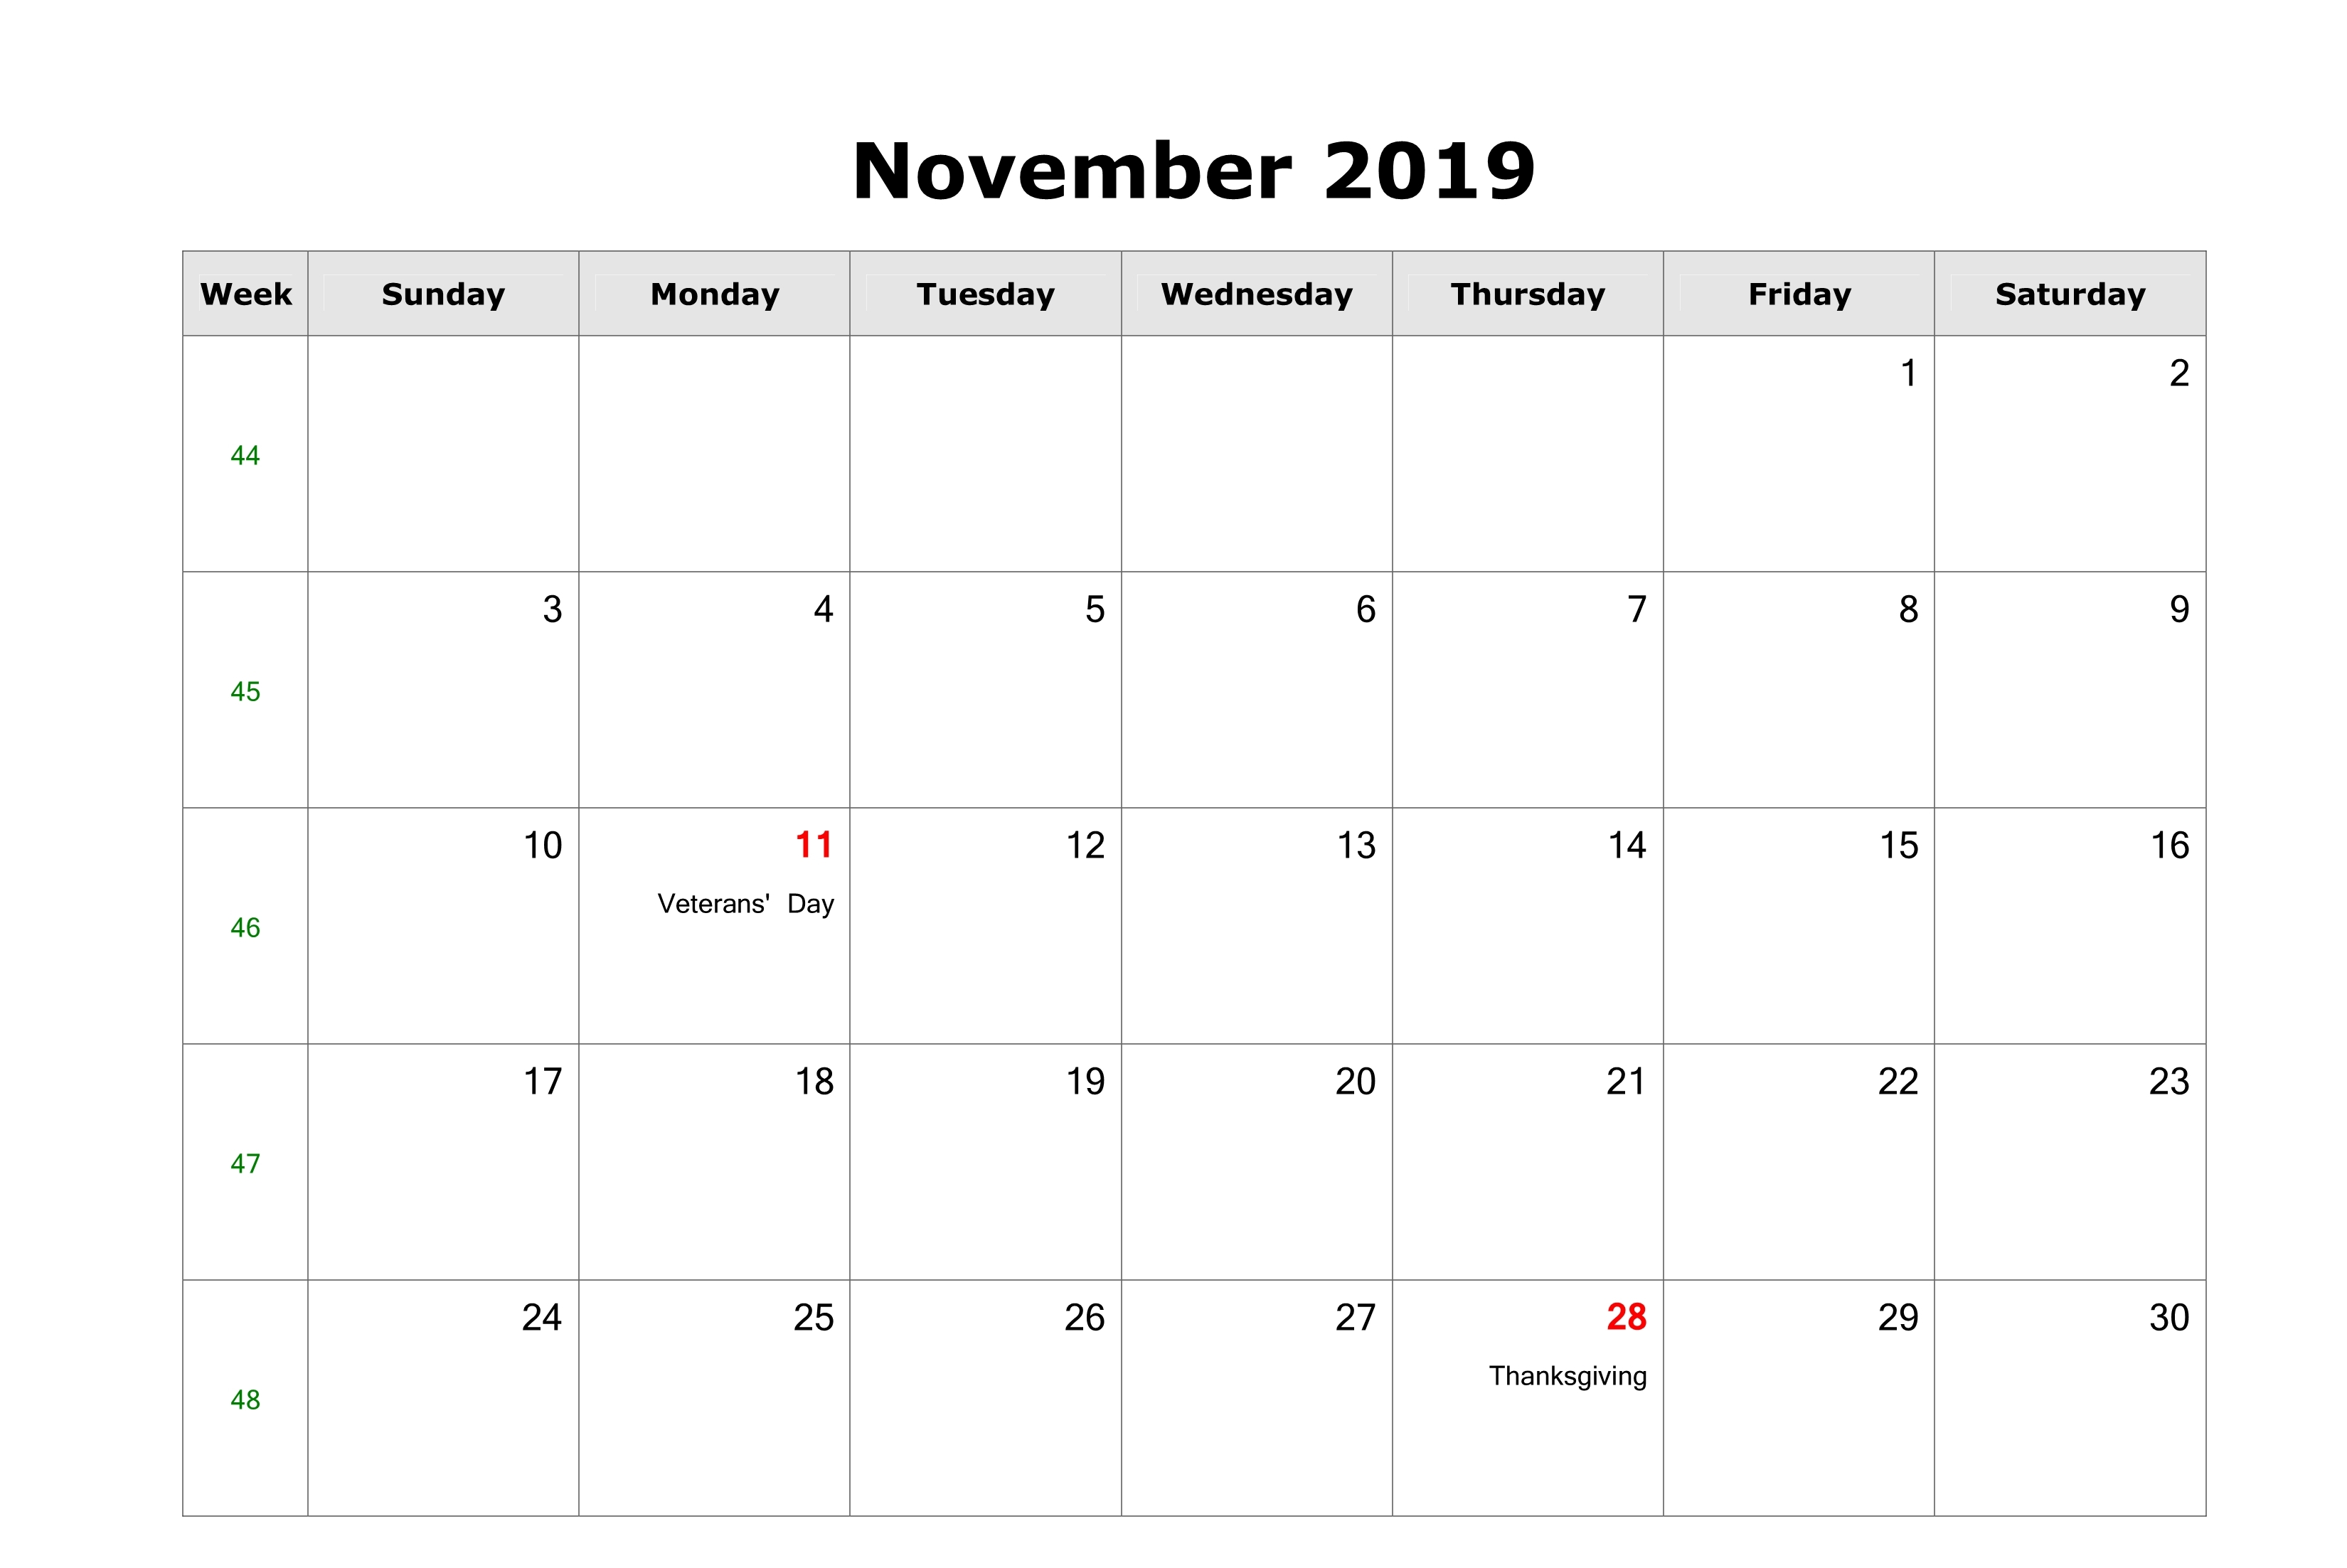 November 2019 Calendar With Holidays Canada